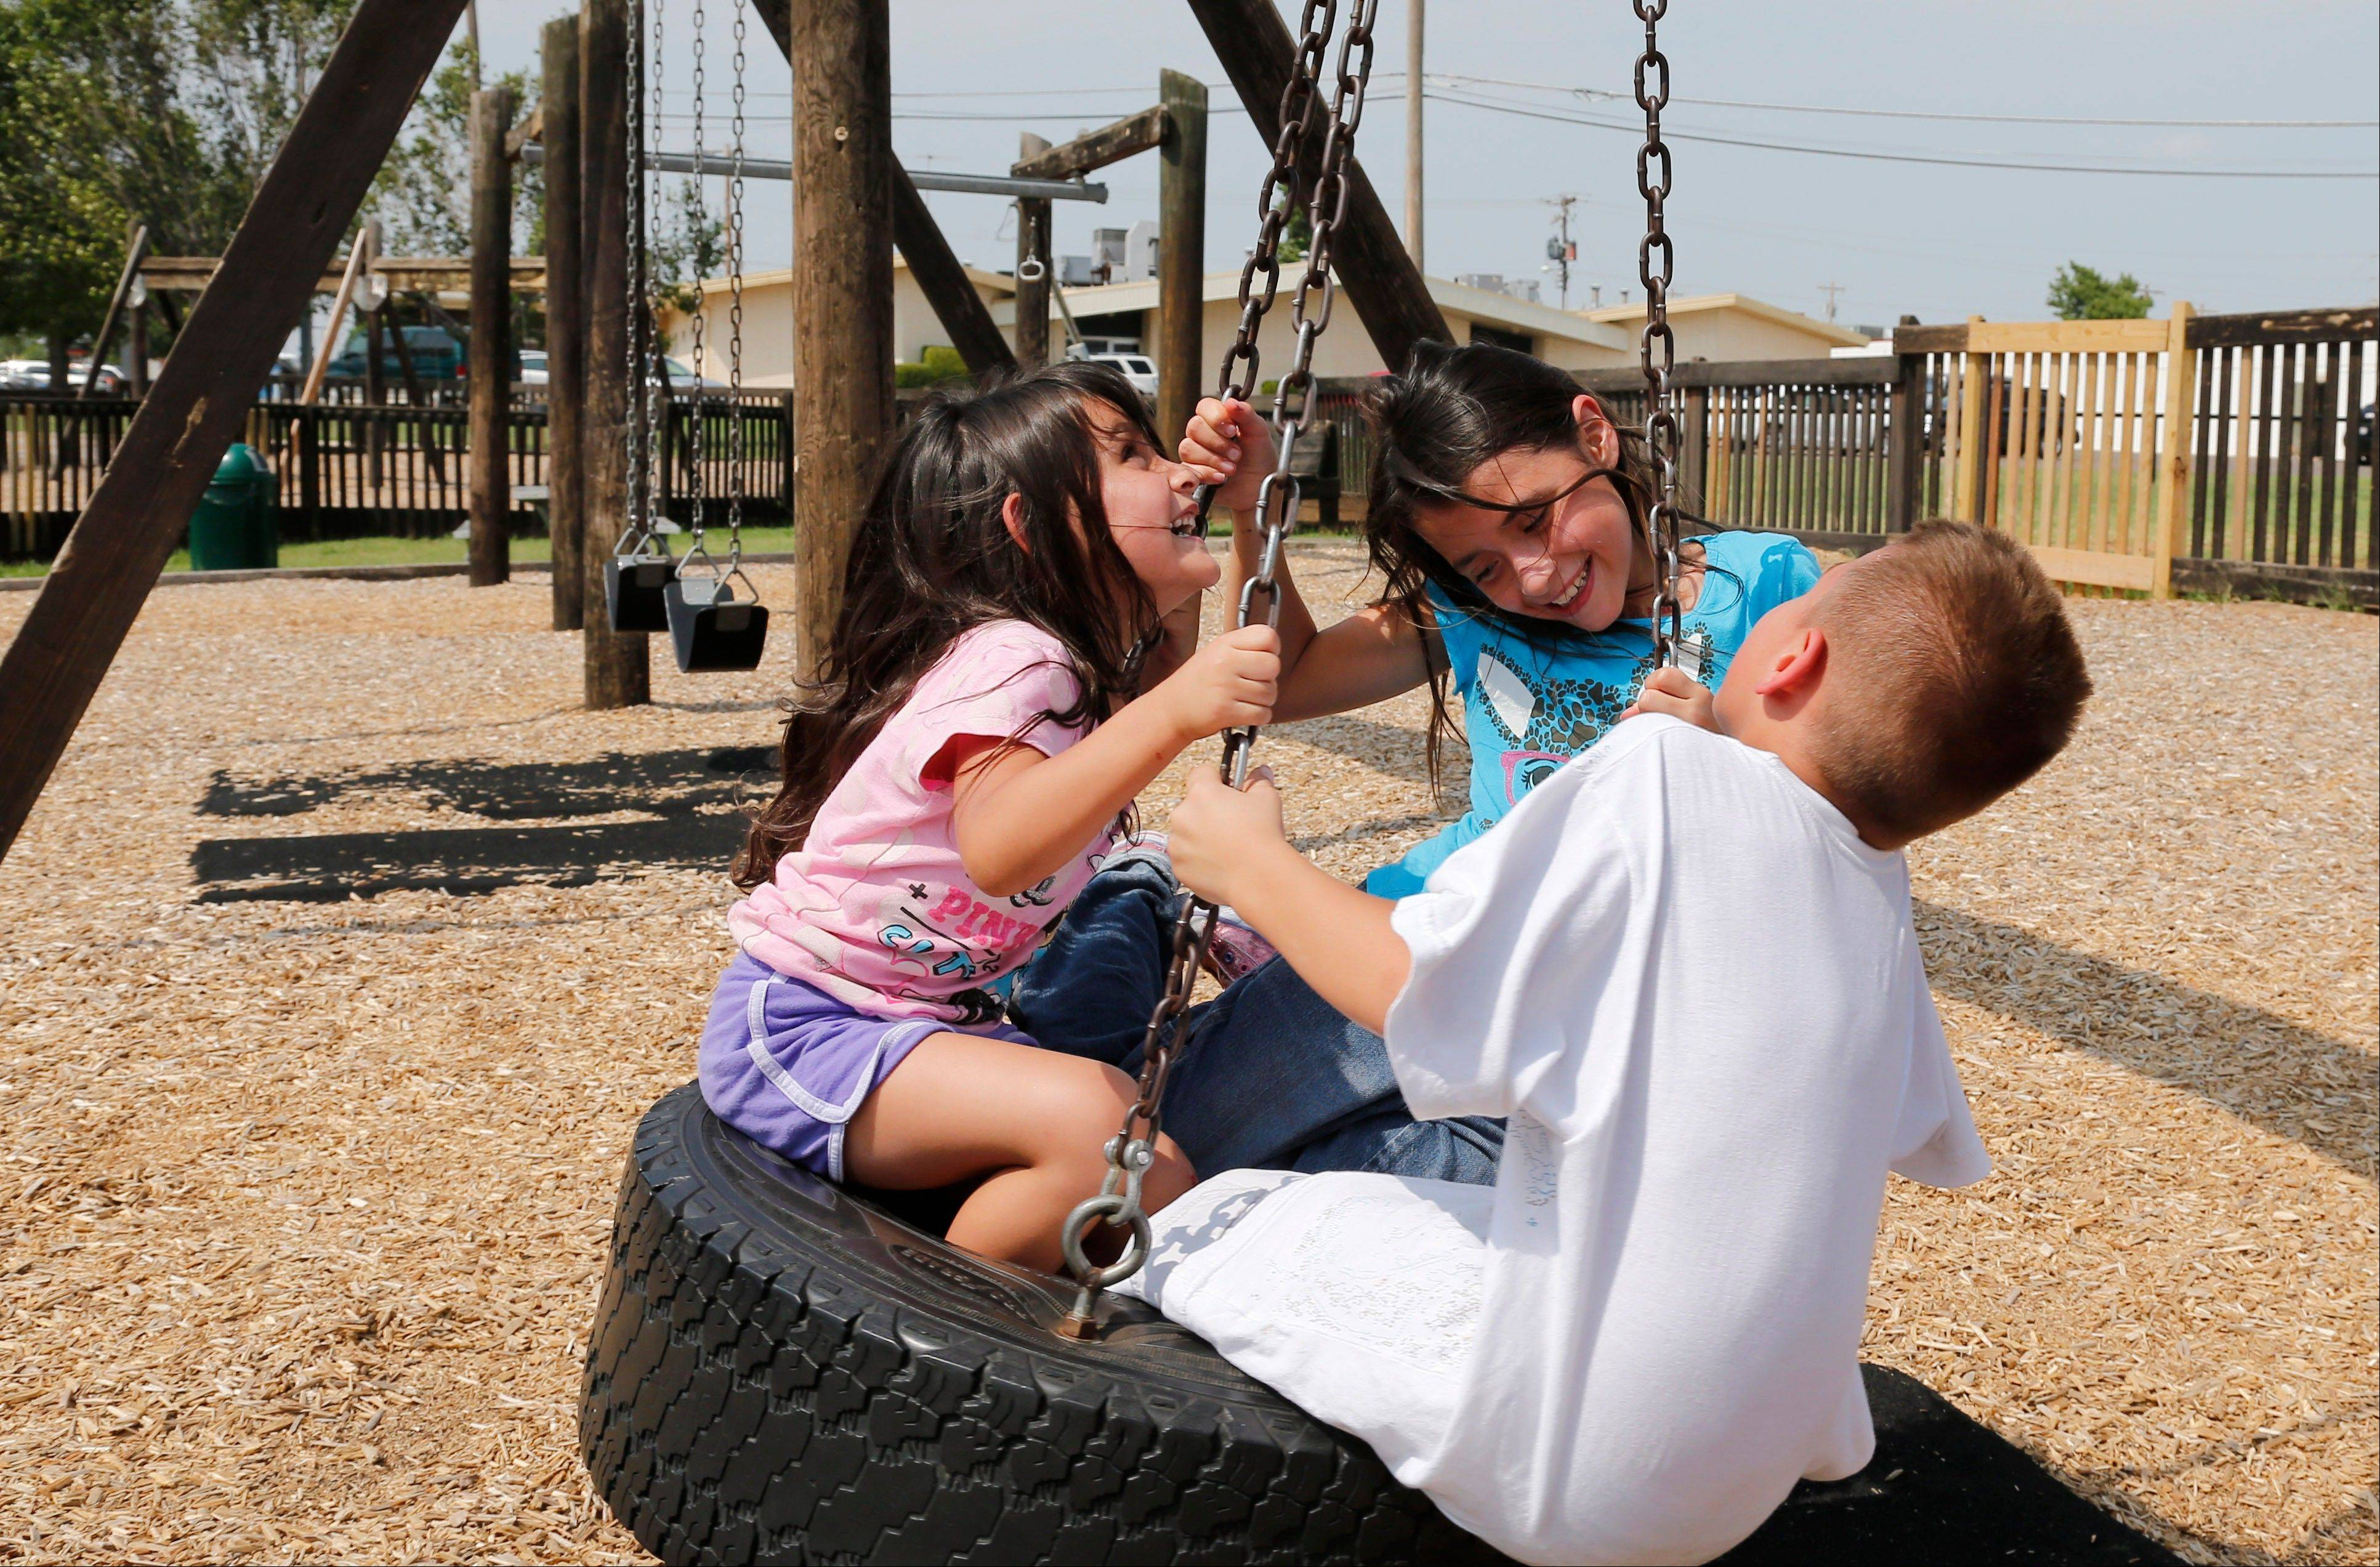 Ruby Macias, 9, center, who was pulled from the rubble of Plaza Towers Elementary School in the May 20, 2013 tornado, swings on a tire swing with her sister, Aylin, 4, left, and brother Angel, 7. Angel was also at the school on the day of the tornado. Now she gets scared whenever the weather turns bad and remains troubled by the death of her close friend, Sydney Angle. �She says she dreams about her friend,� said Ruby�s mother, Veronica Macias. �I don�t know what to tell her.�